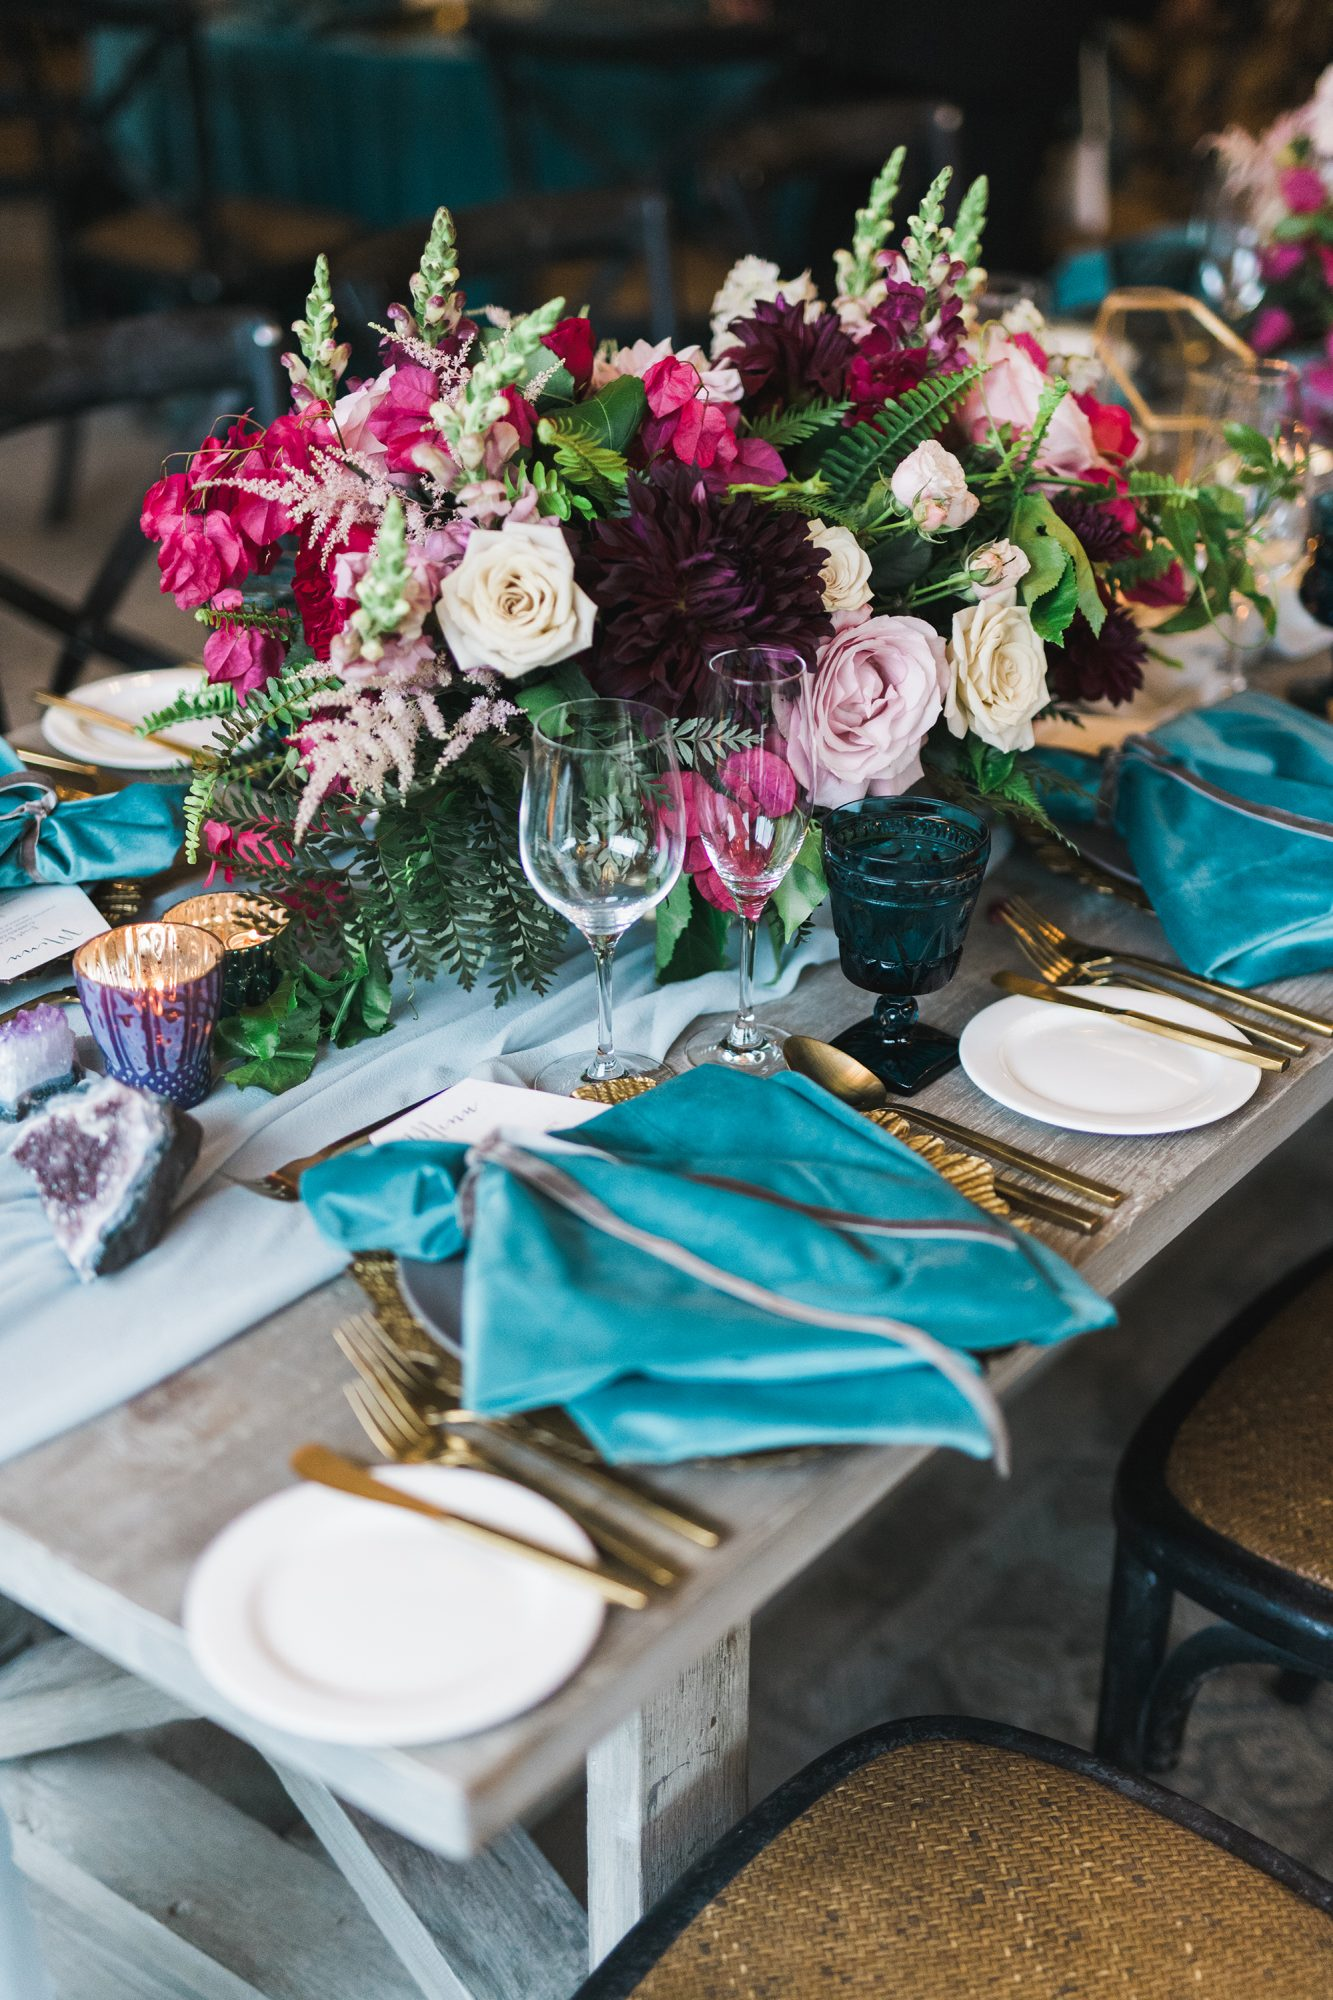 jewel-toned centerpiece with garden roses and dahlias